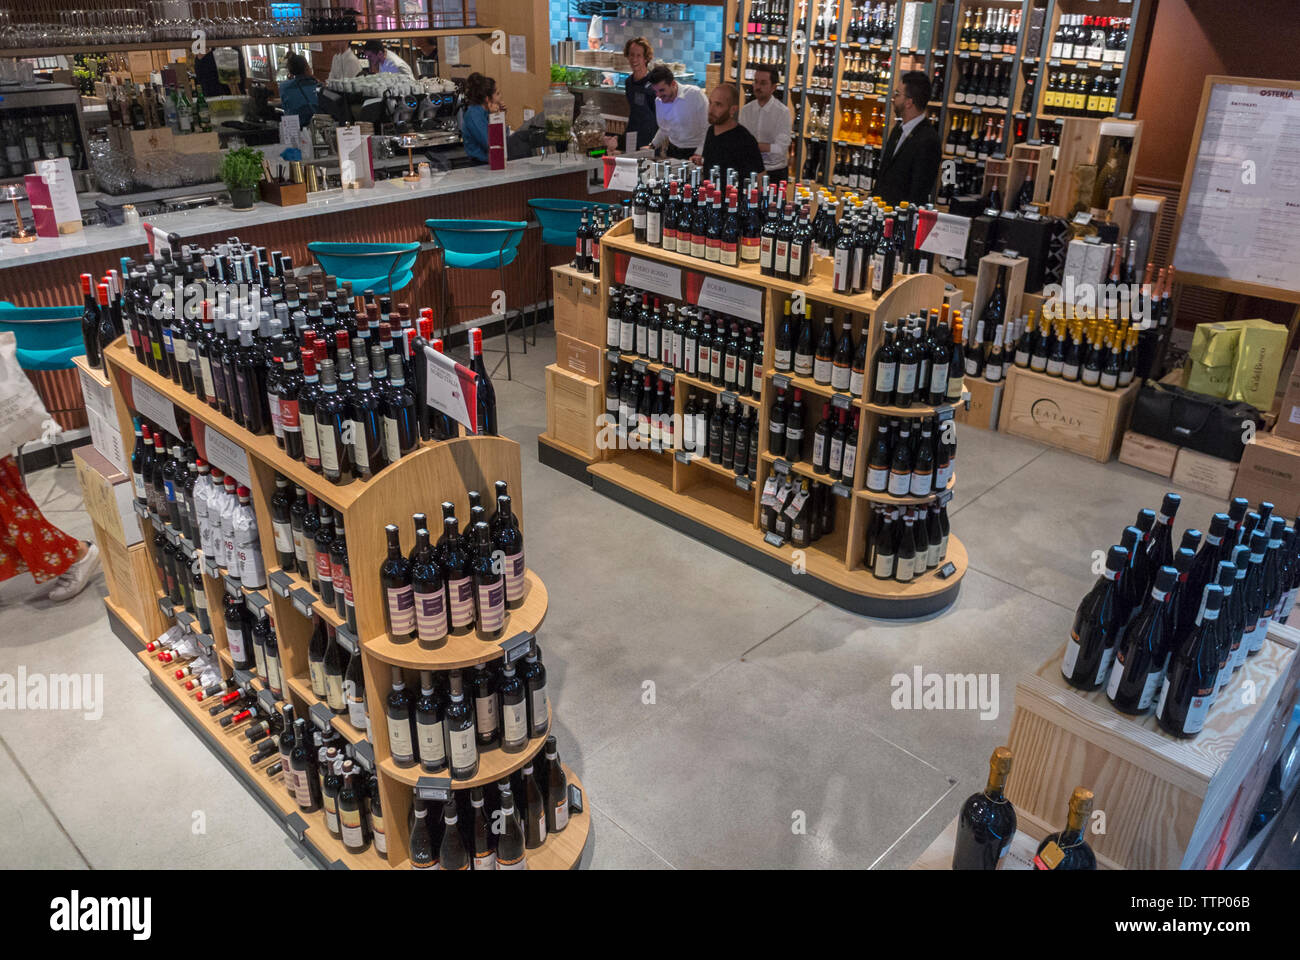 Paris, FRANCE, People inside  Italian Food Court, Store and Wine Shop, in the Marais, Eataly - Stock Image